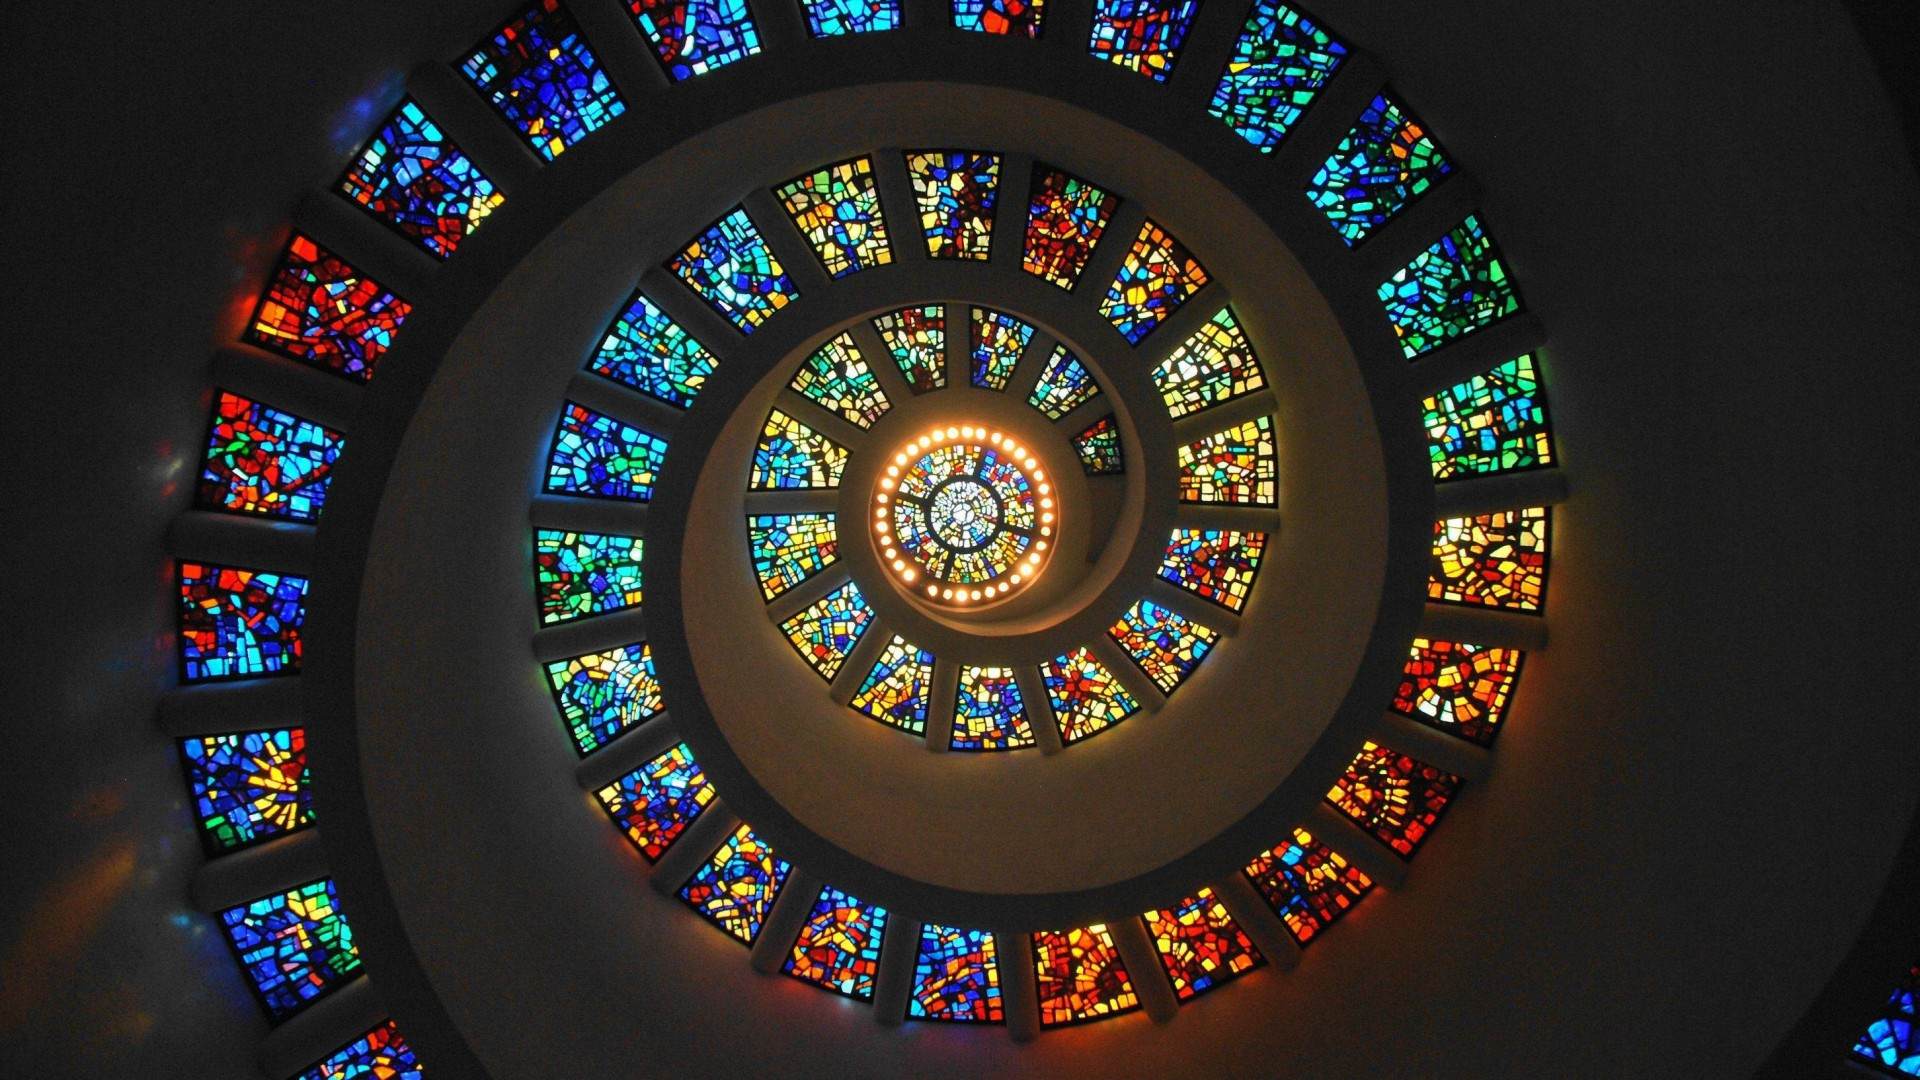 spiral_stained_glass_1920x1080_50358